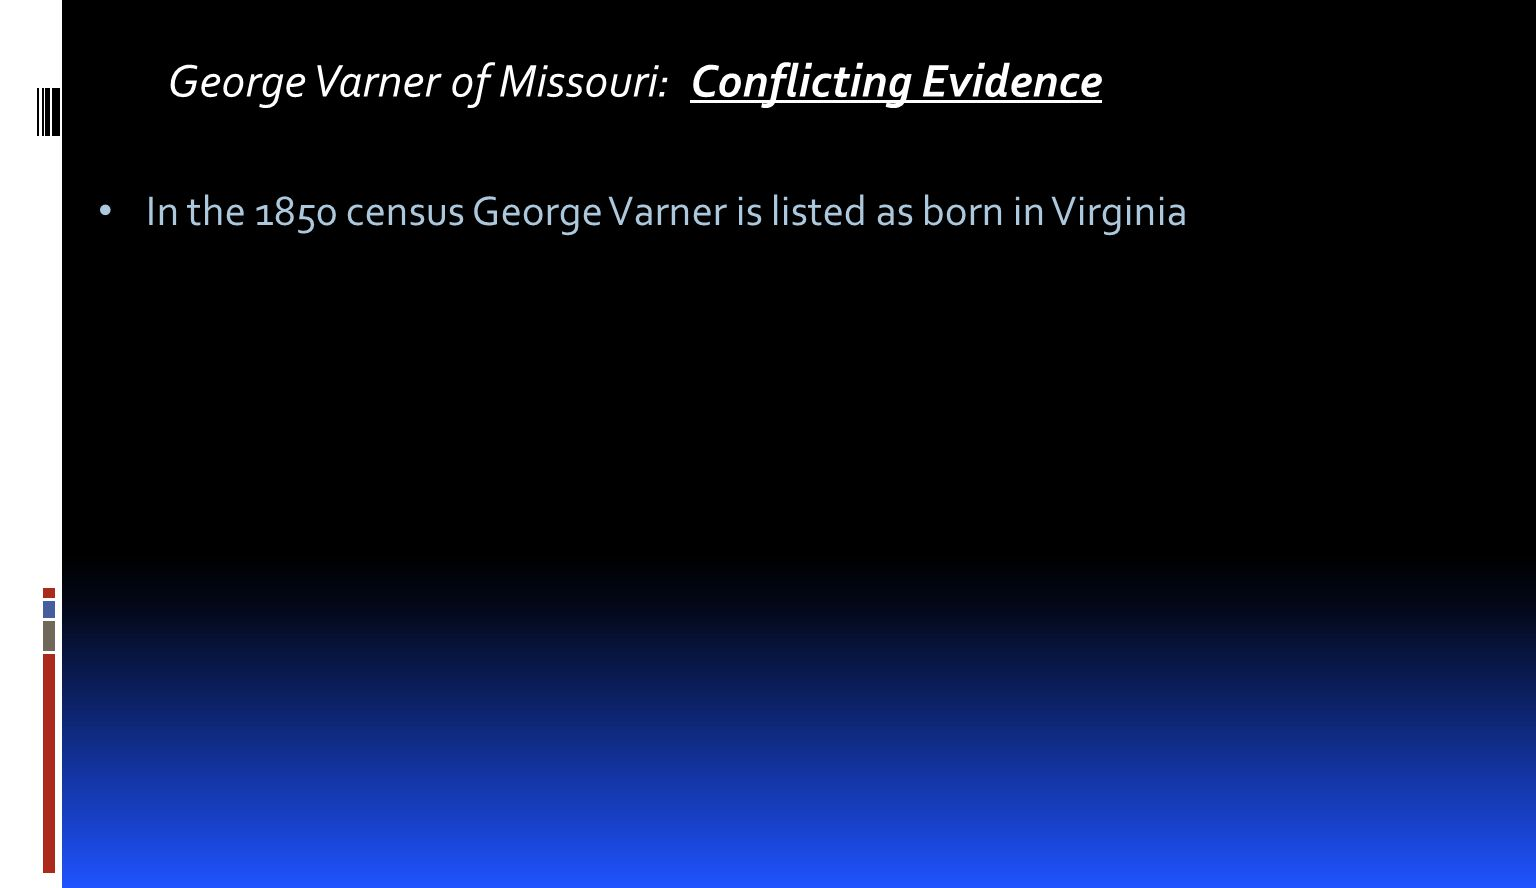 George Varner of Missouri: Conflicting Evidence In the 1850 census George Varner is listed as born in Virginia There is no smoking gun evidence to confirm the conclusion beyond any doubt.